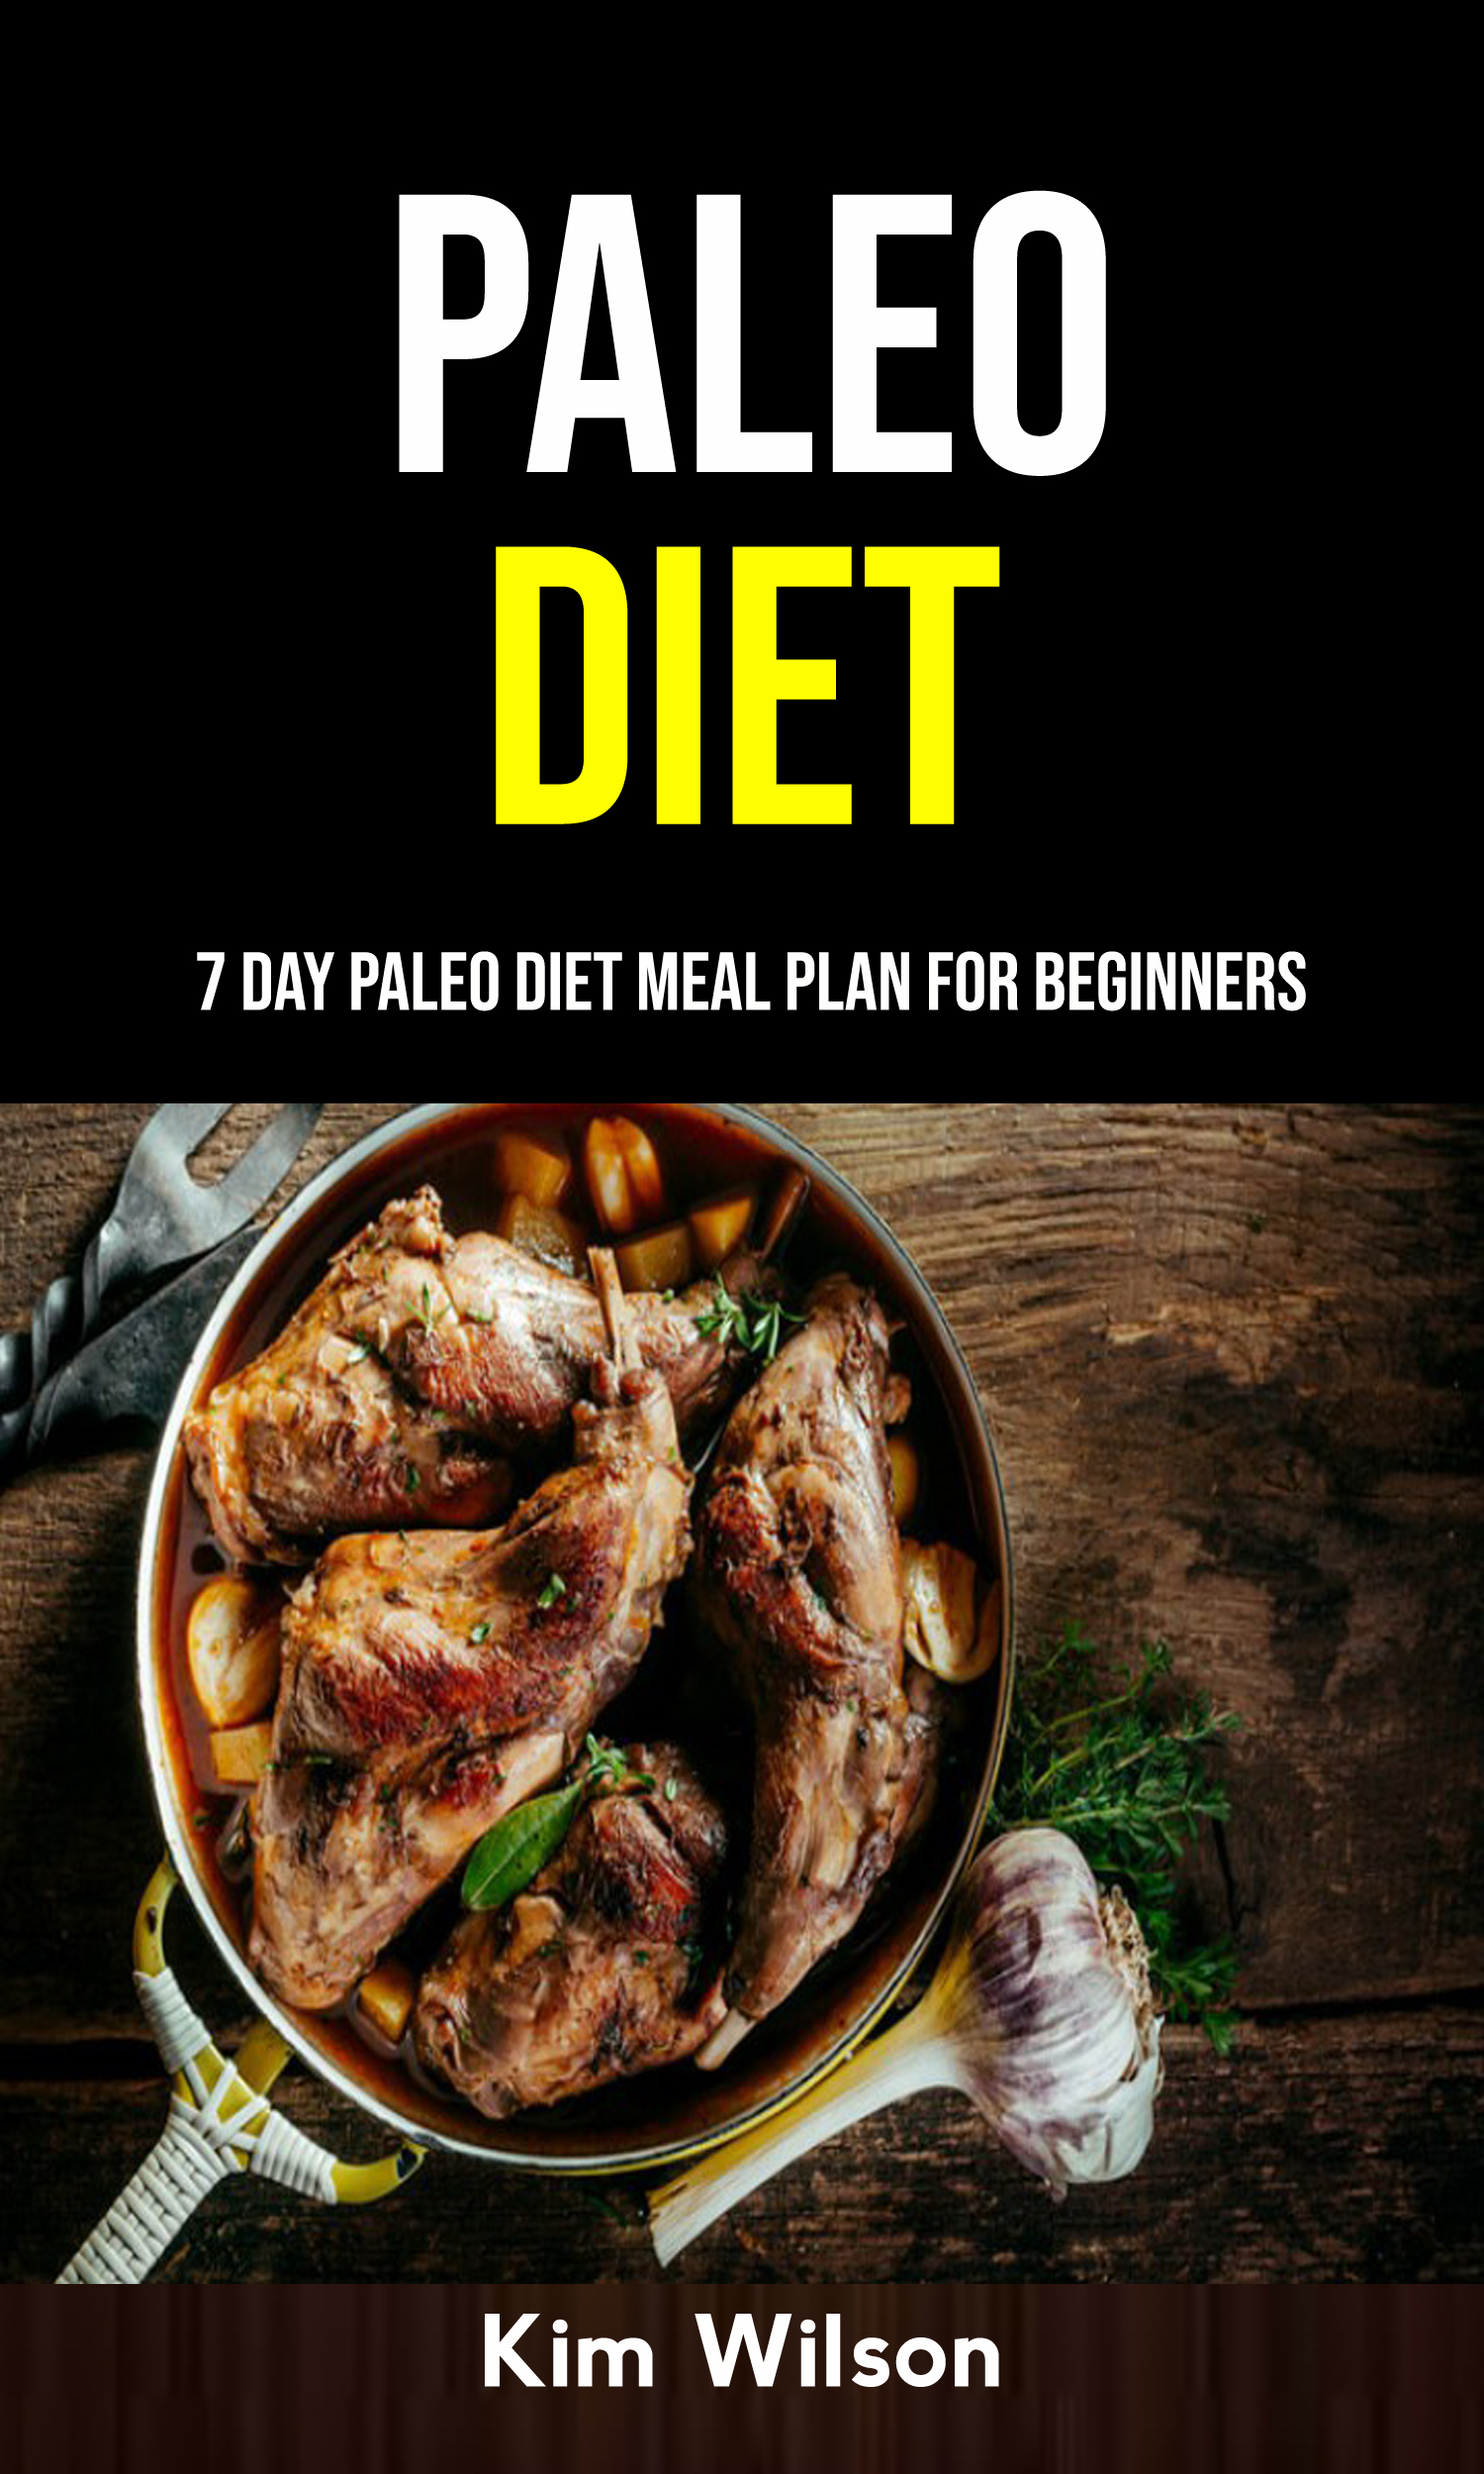 Paleo diet: 7 day paleo diet meal plan for beginners